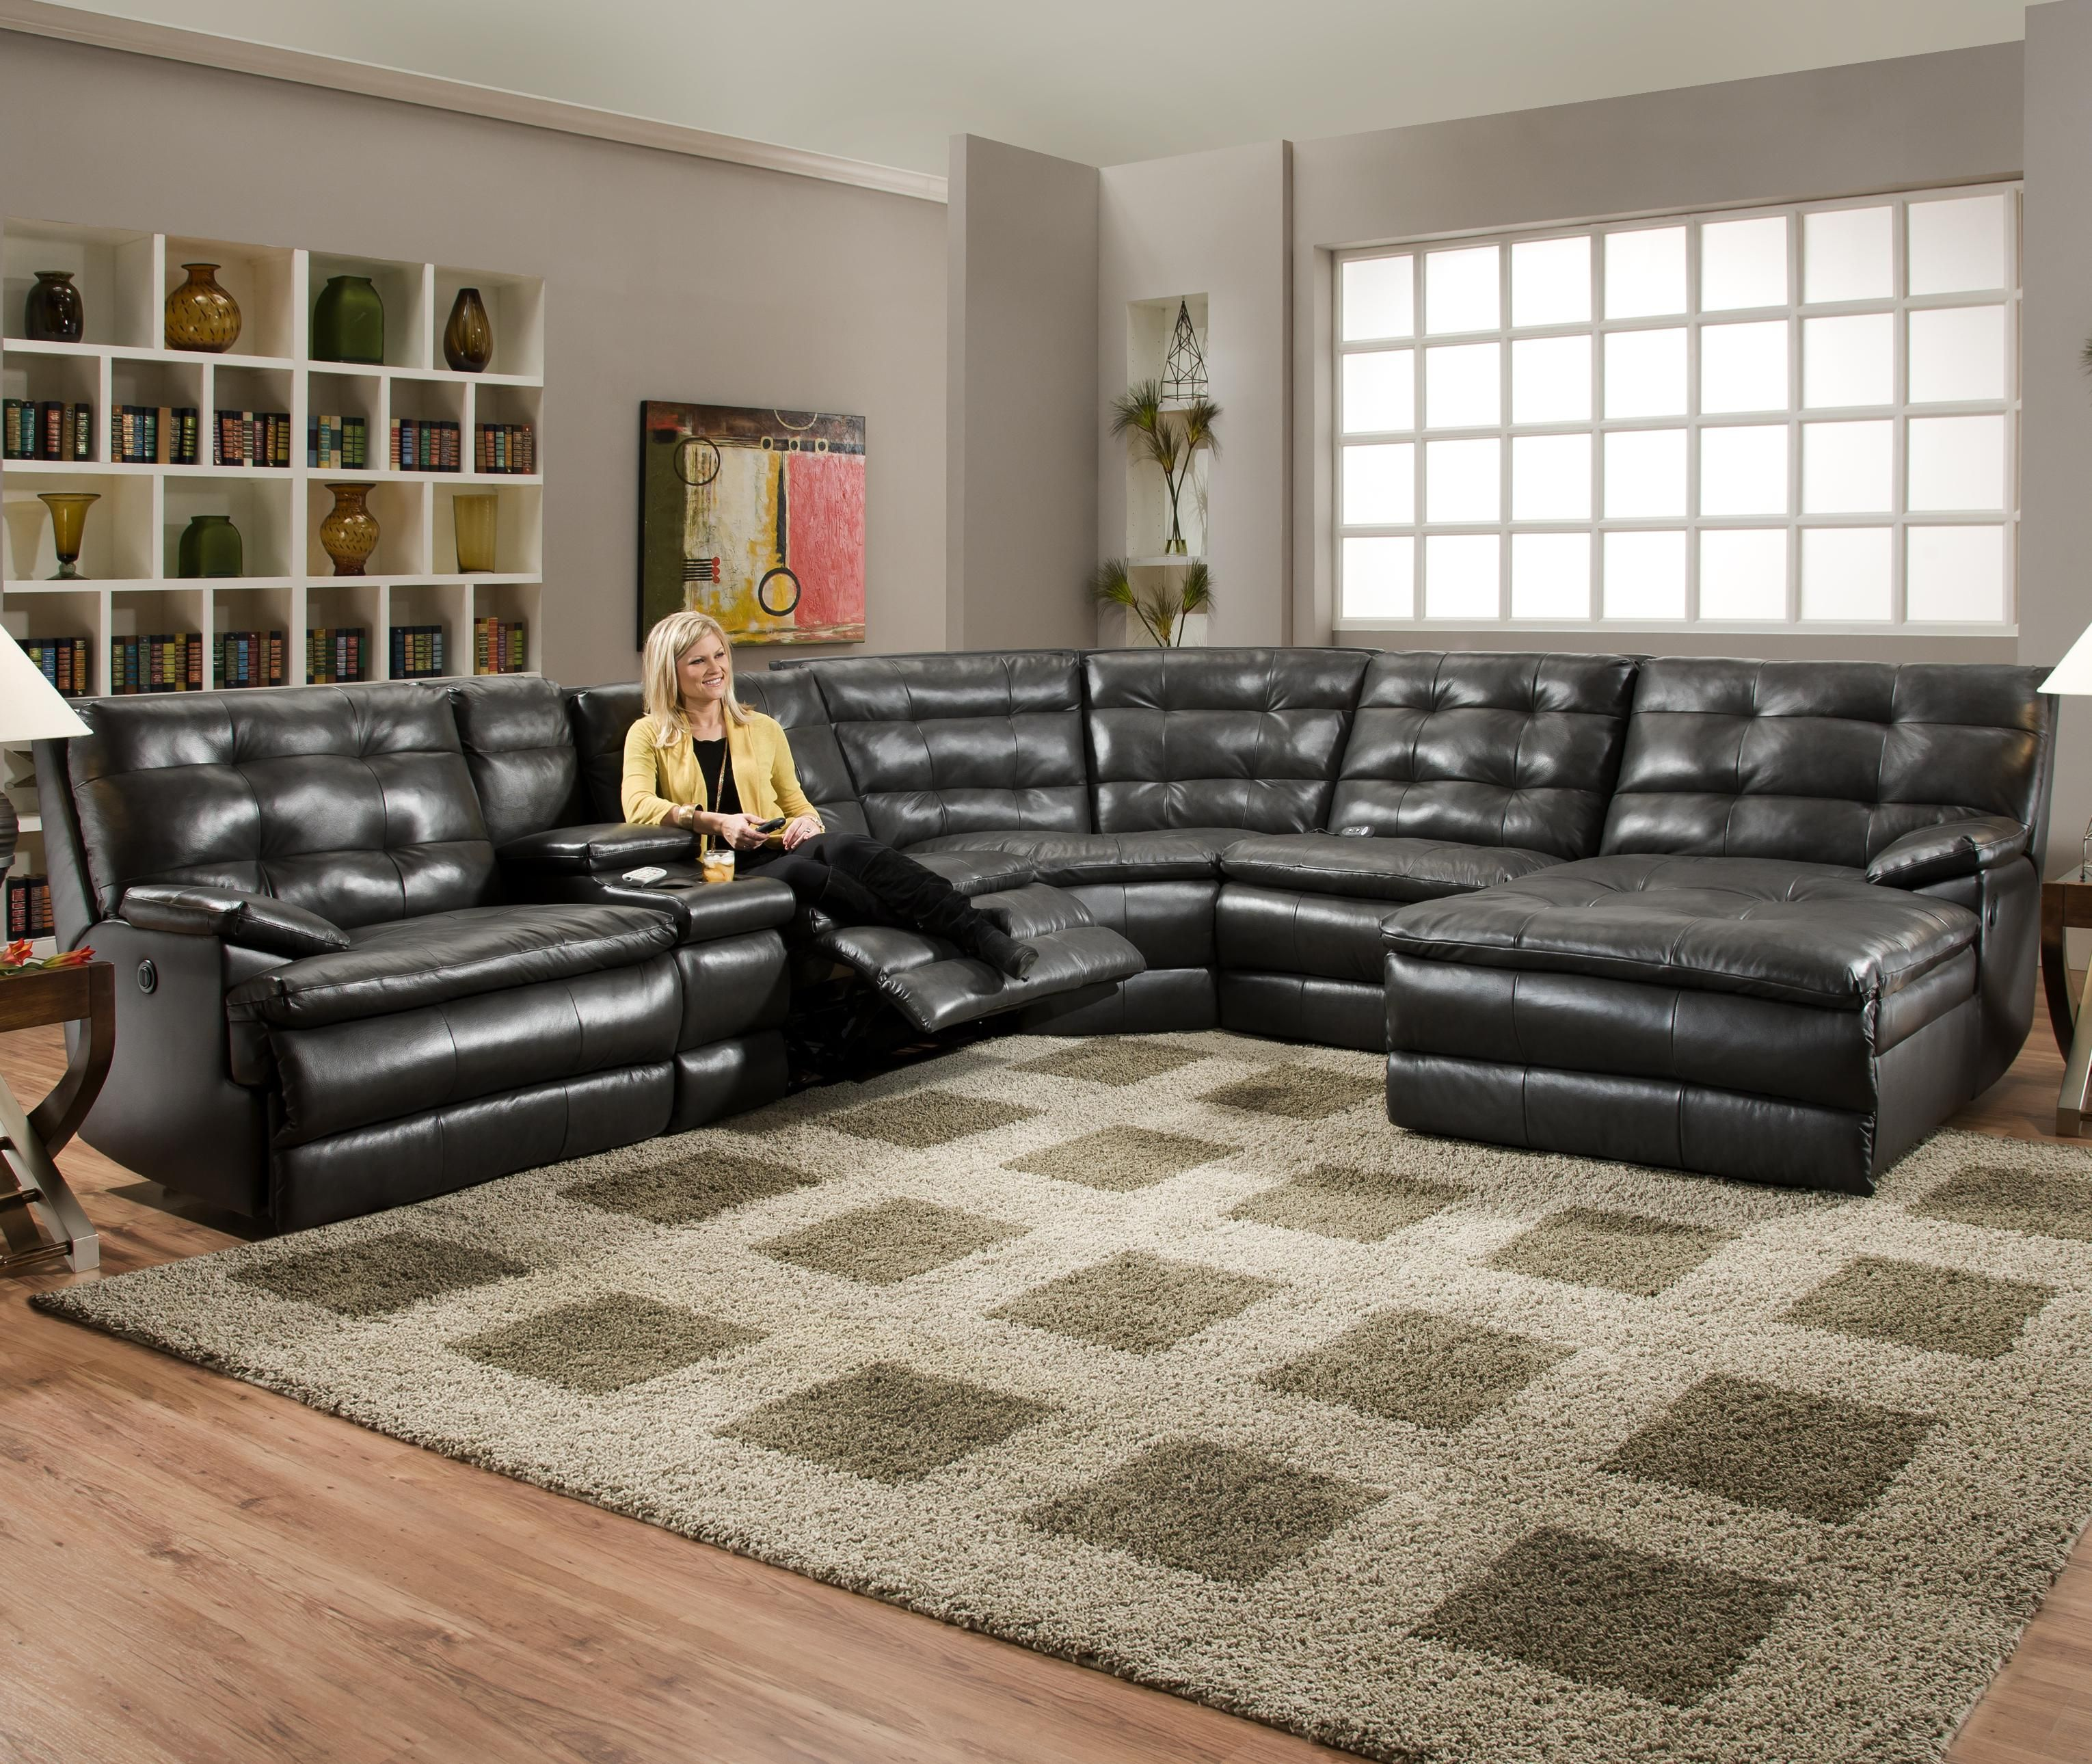 Large Recliners For Living Room Large Sectional Sofa